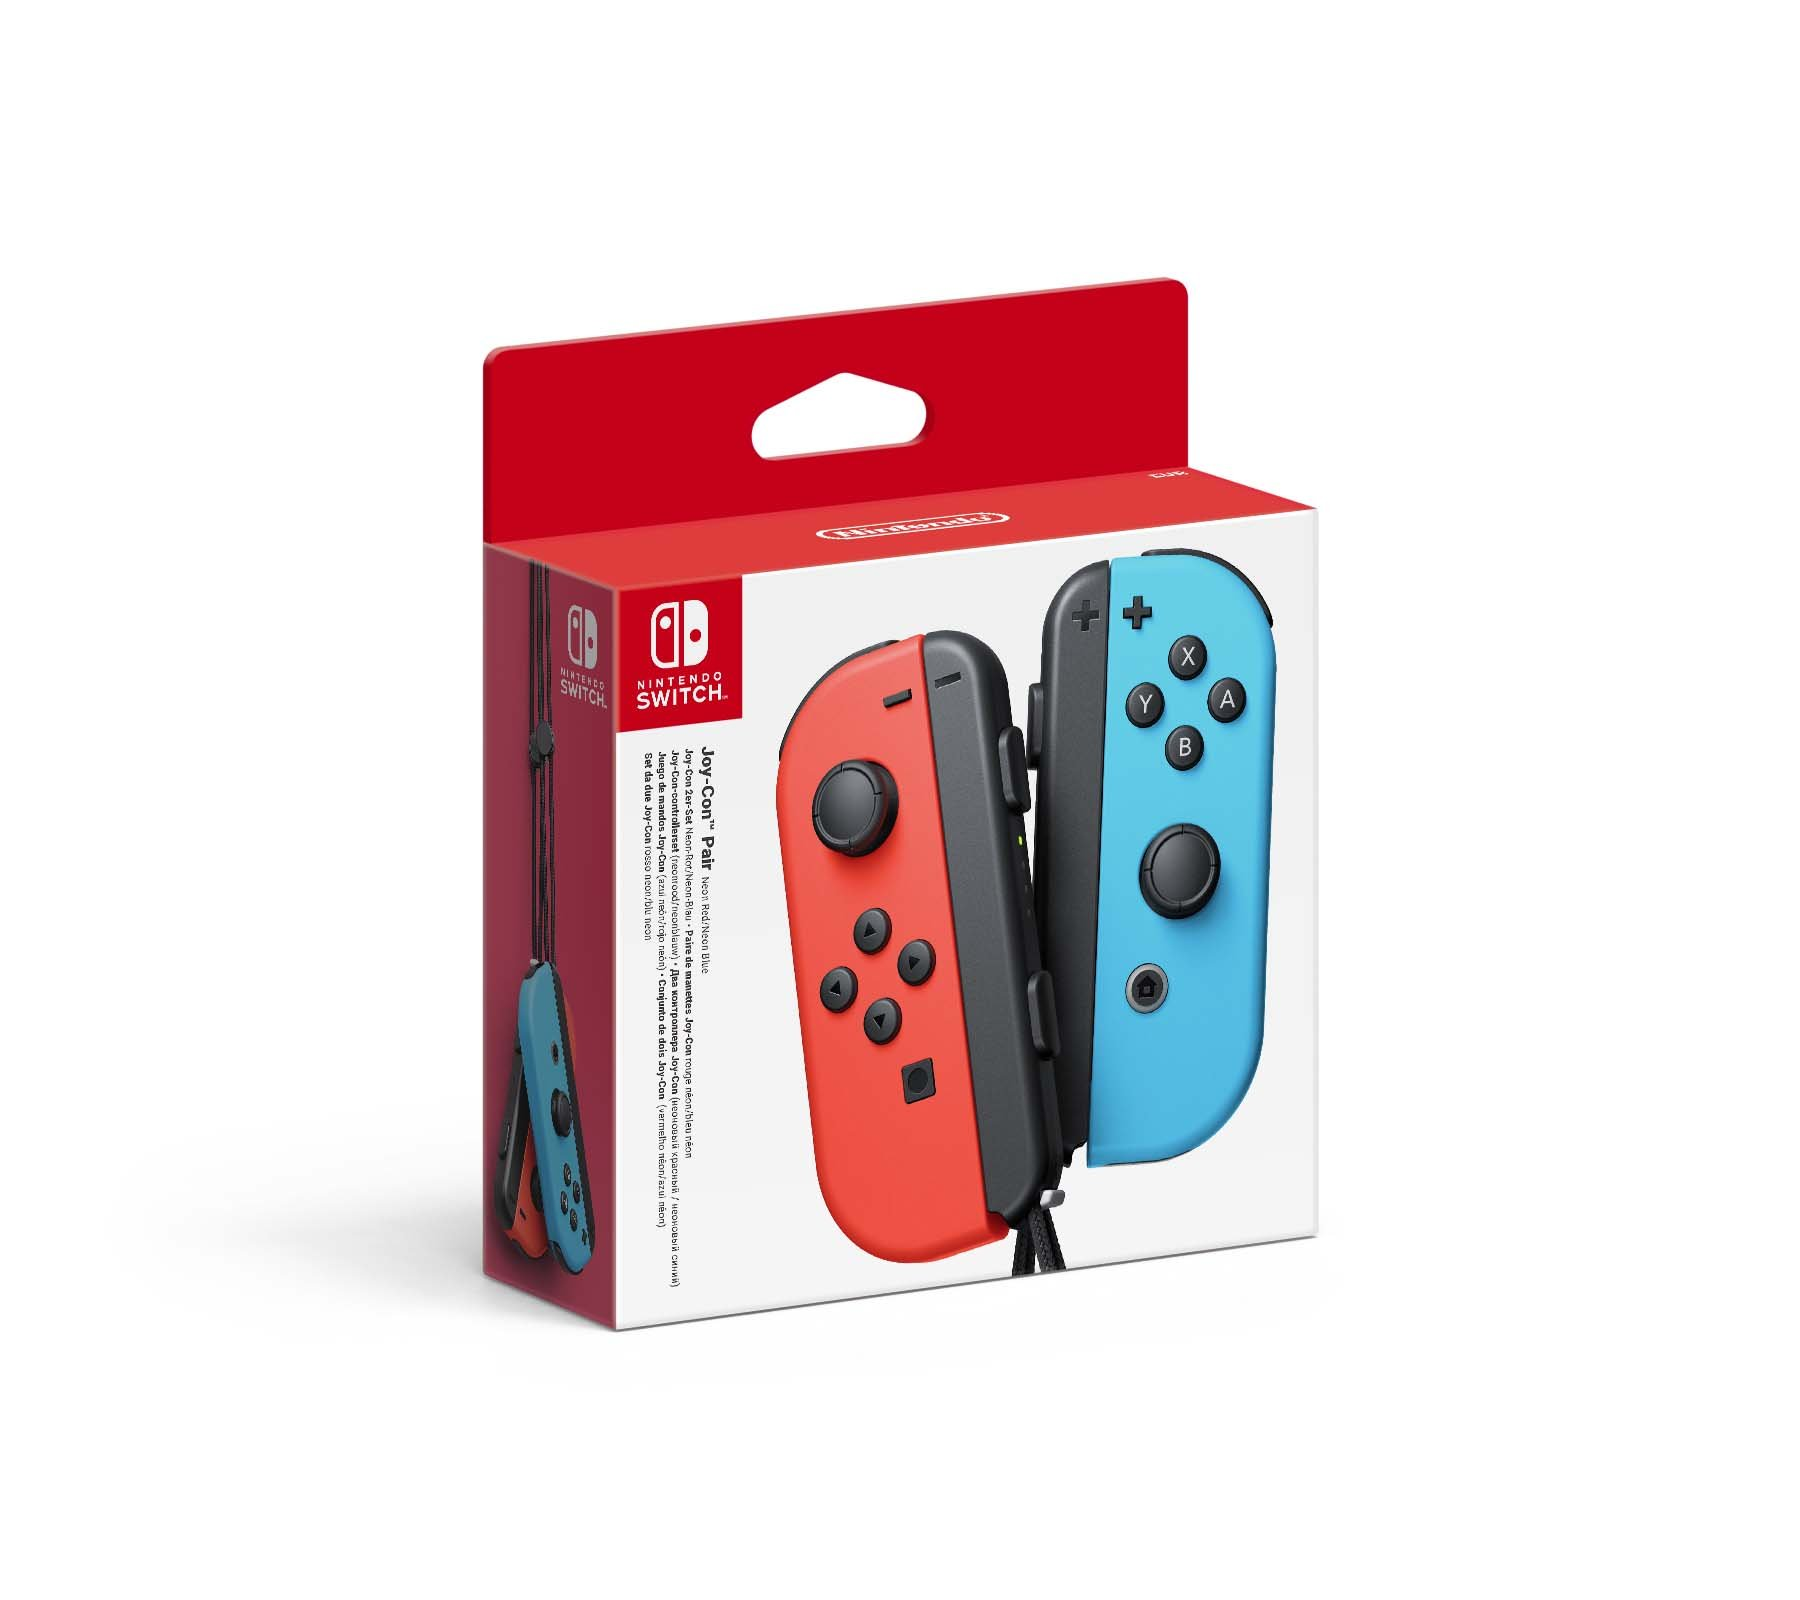 Nintendo Switch Joy-Con Controller Pair - Neon Red/Neon Blue product image